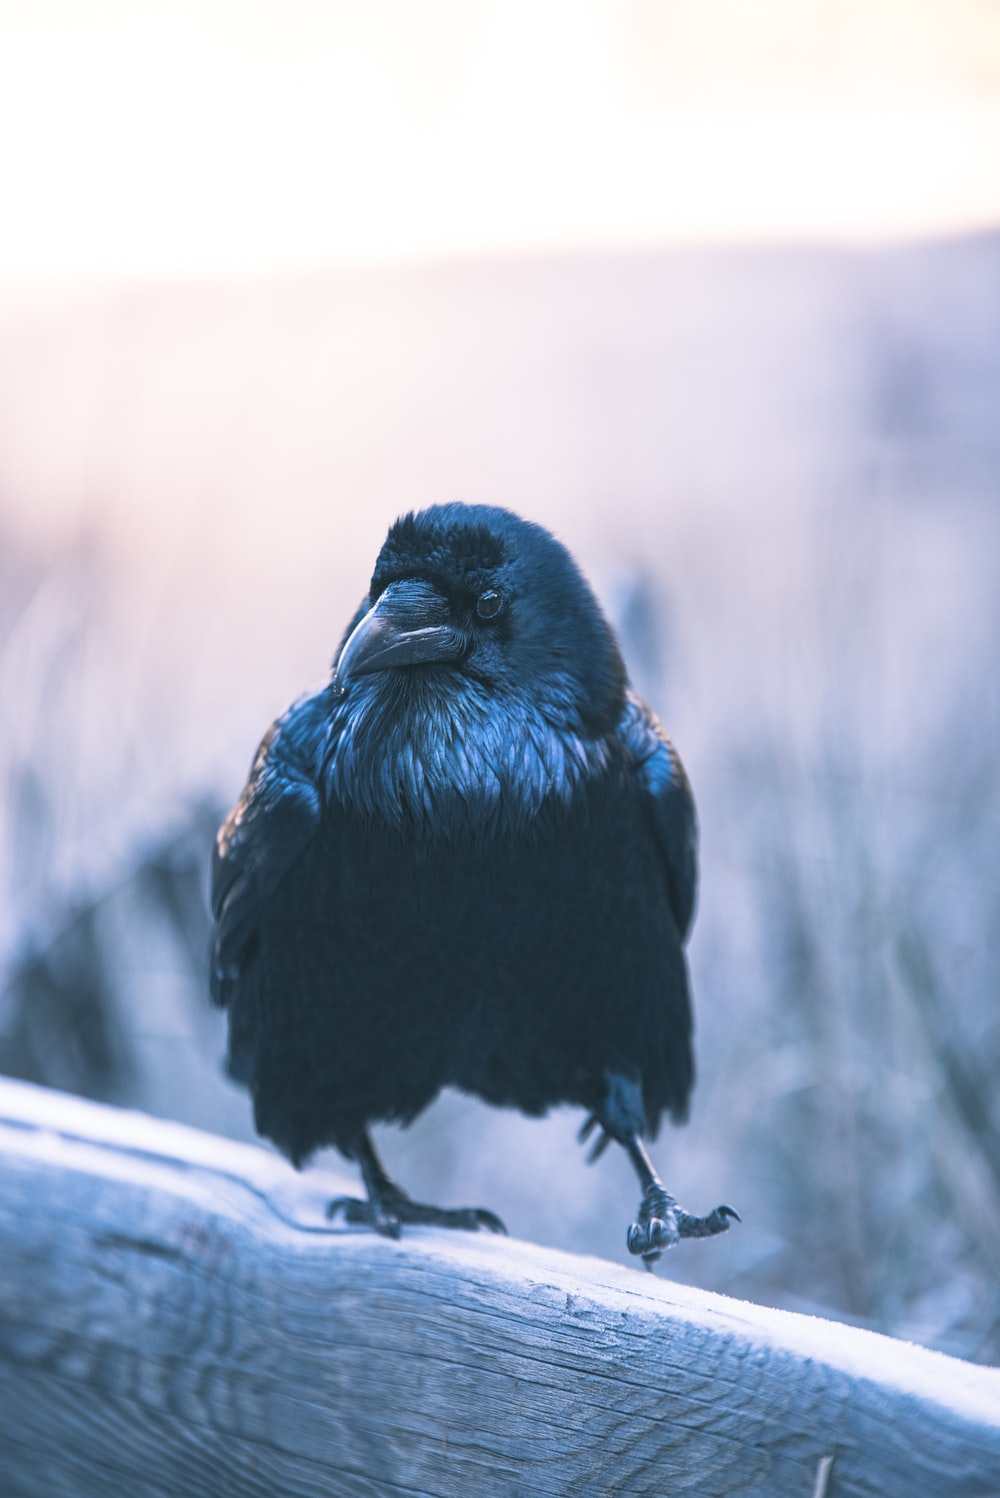 selective focus photography of crow perching on wood